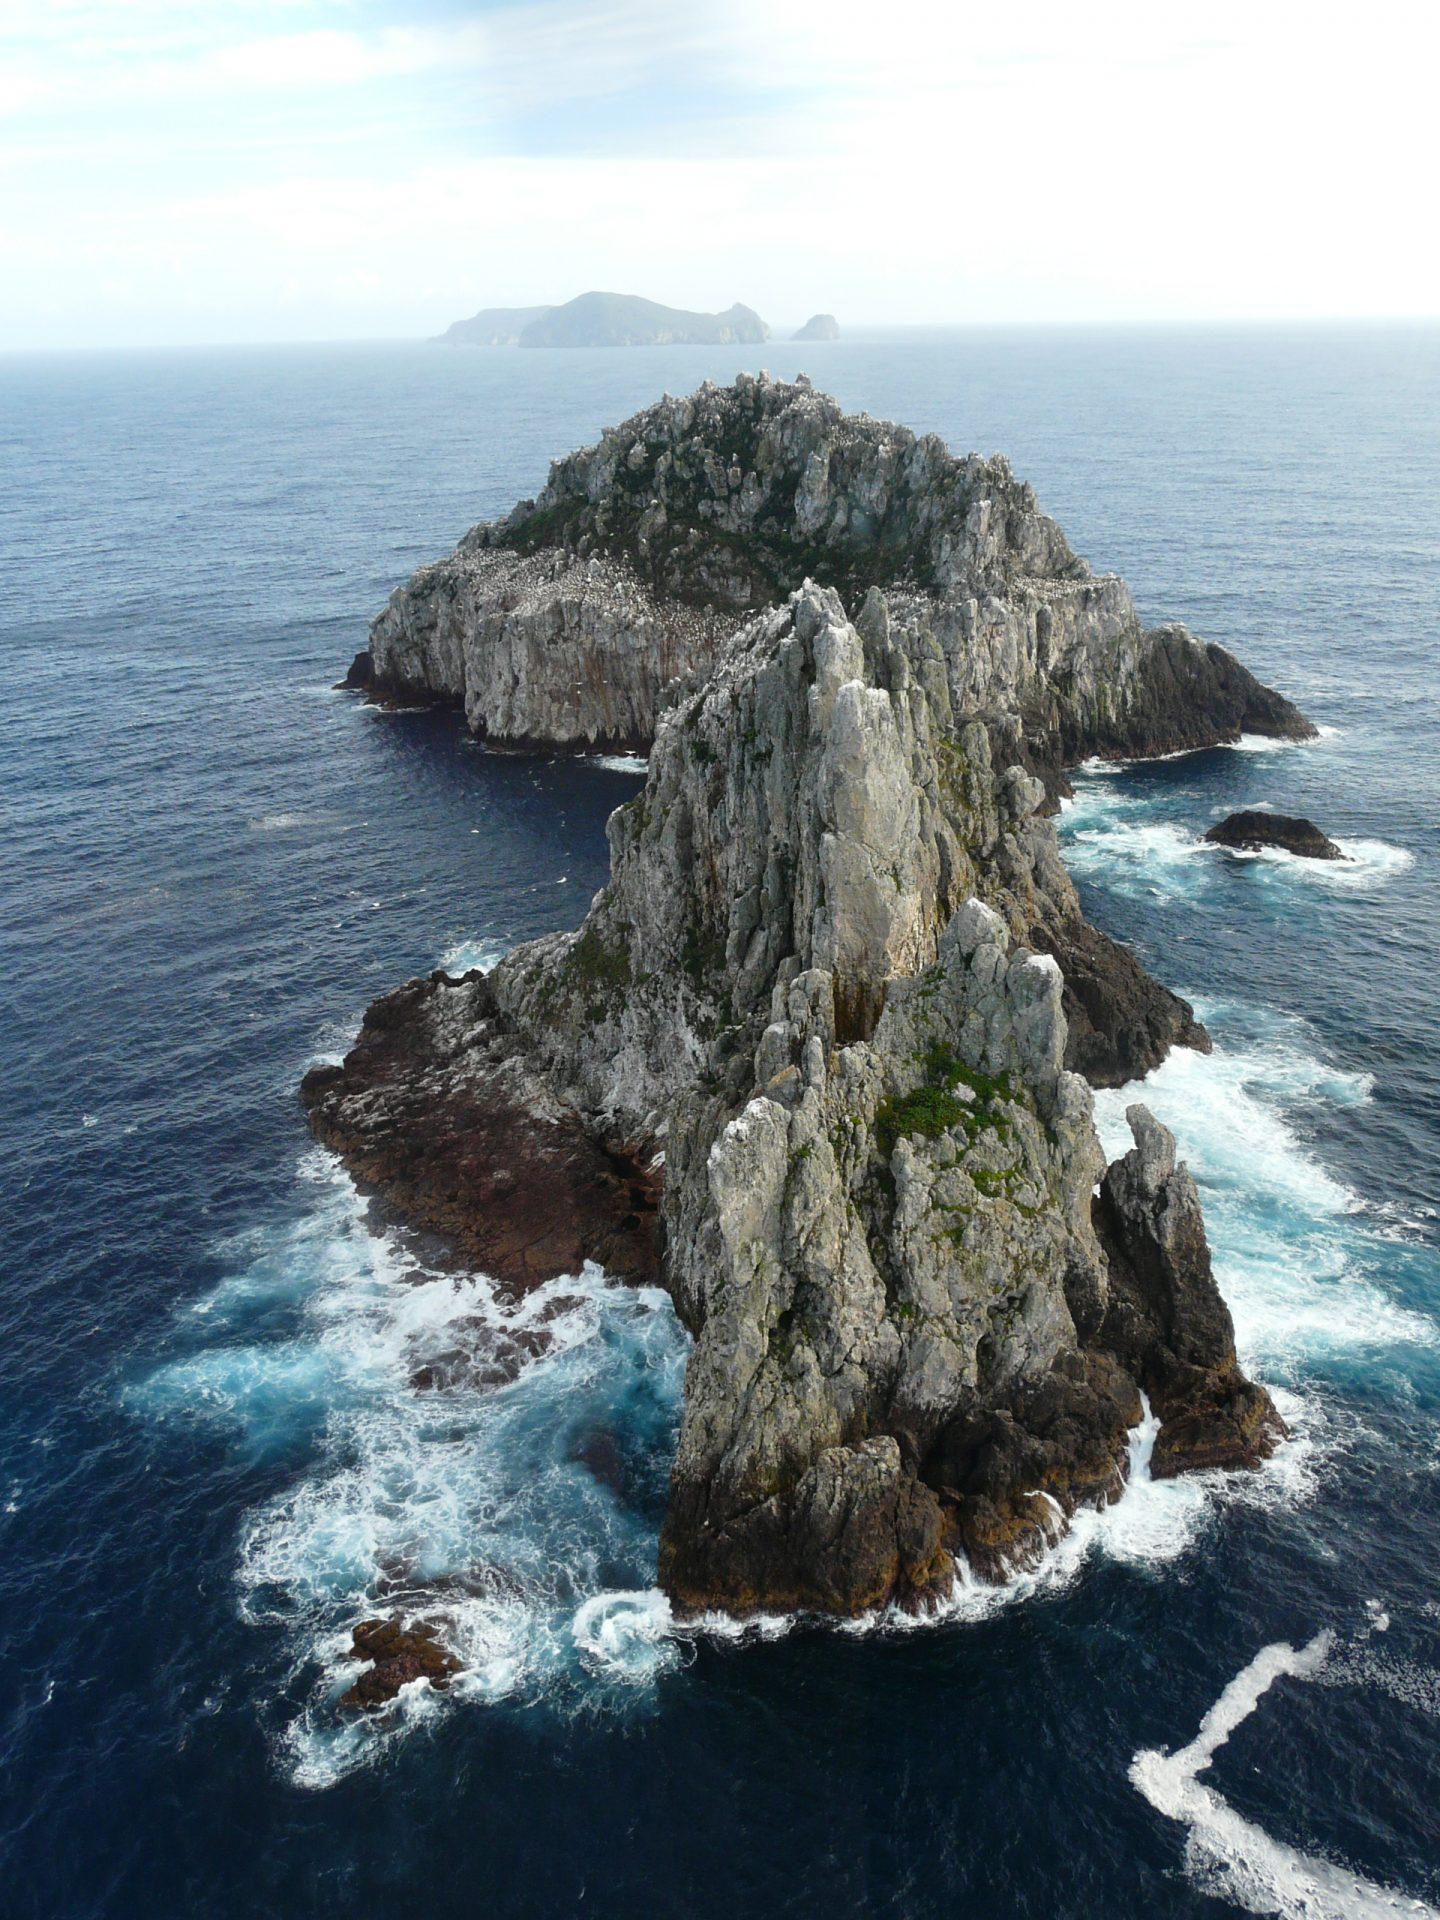 Islands Of The World Fashion Week 2012: Night Life On The Poor Knights Islands